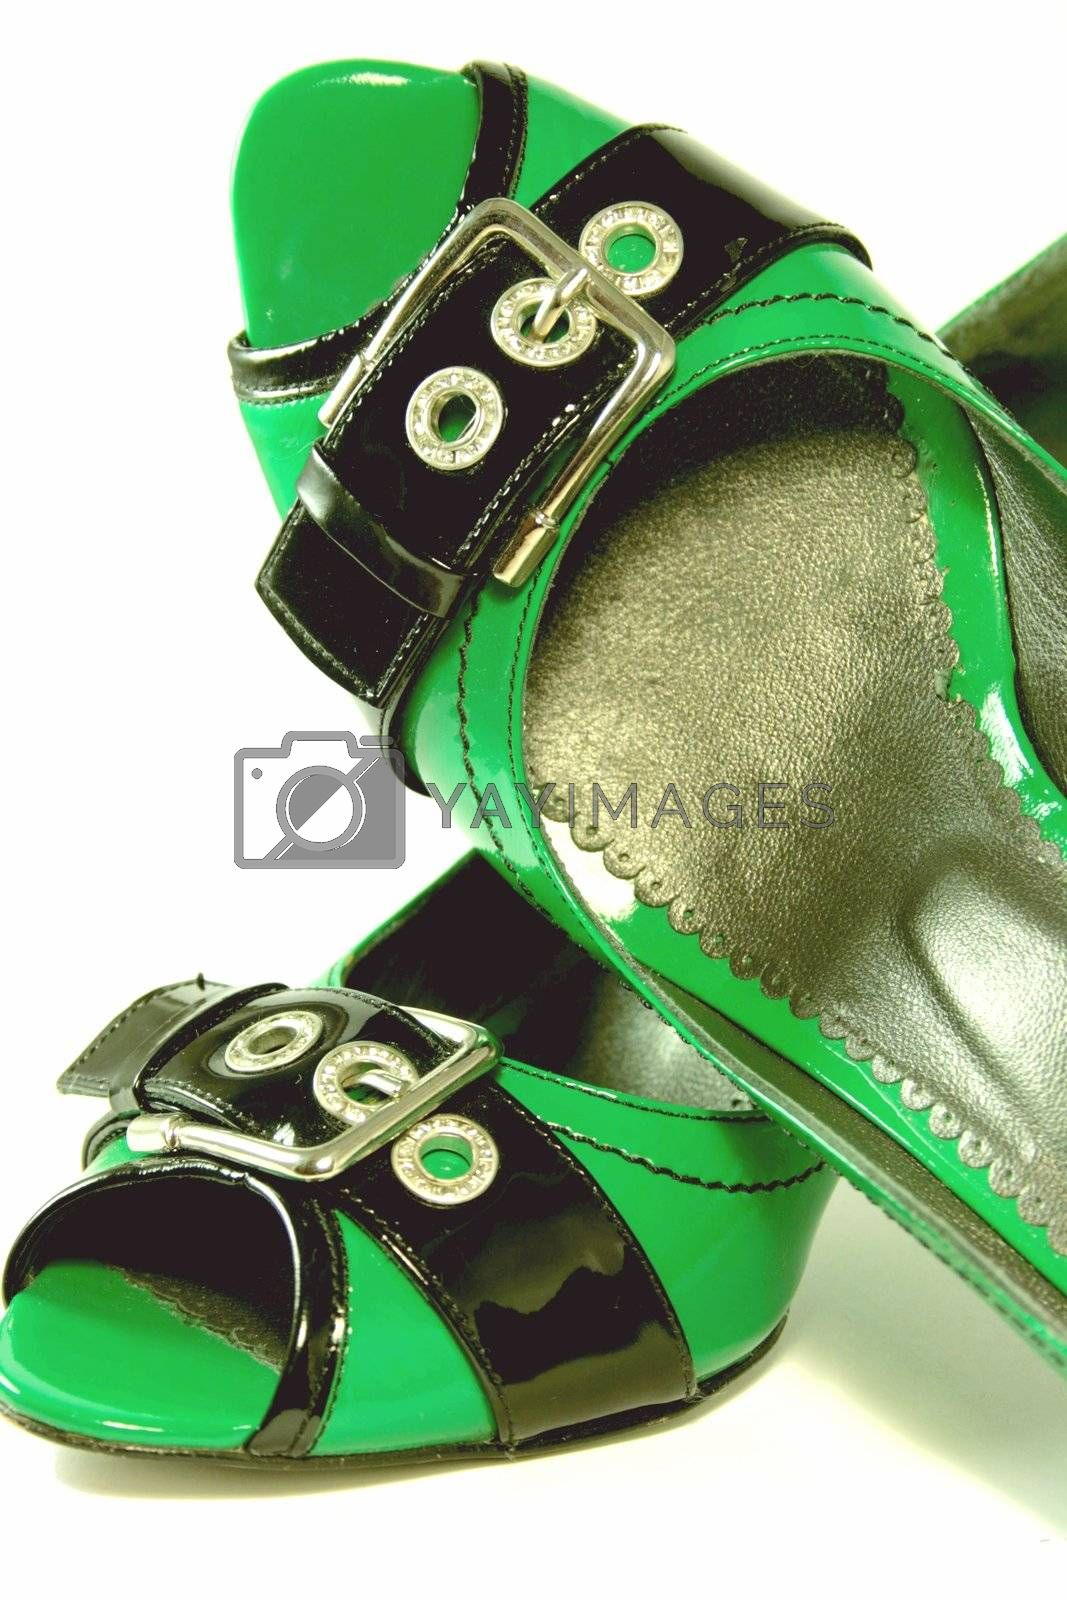 Green High-Heeled Shoes Close-up on white background. Series